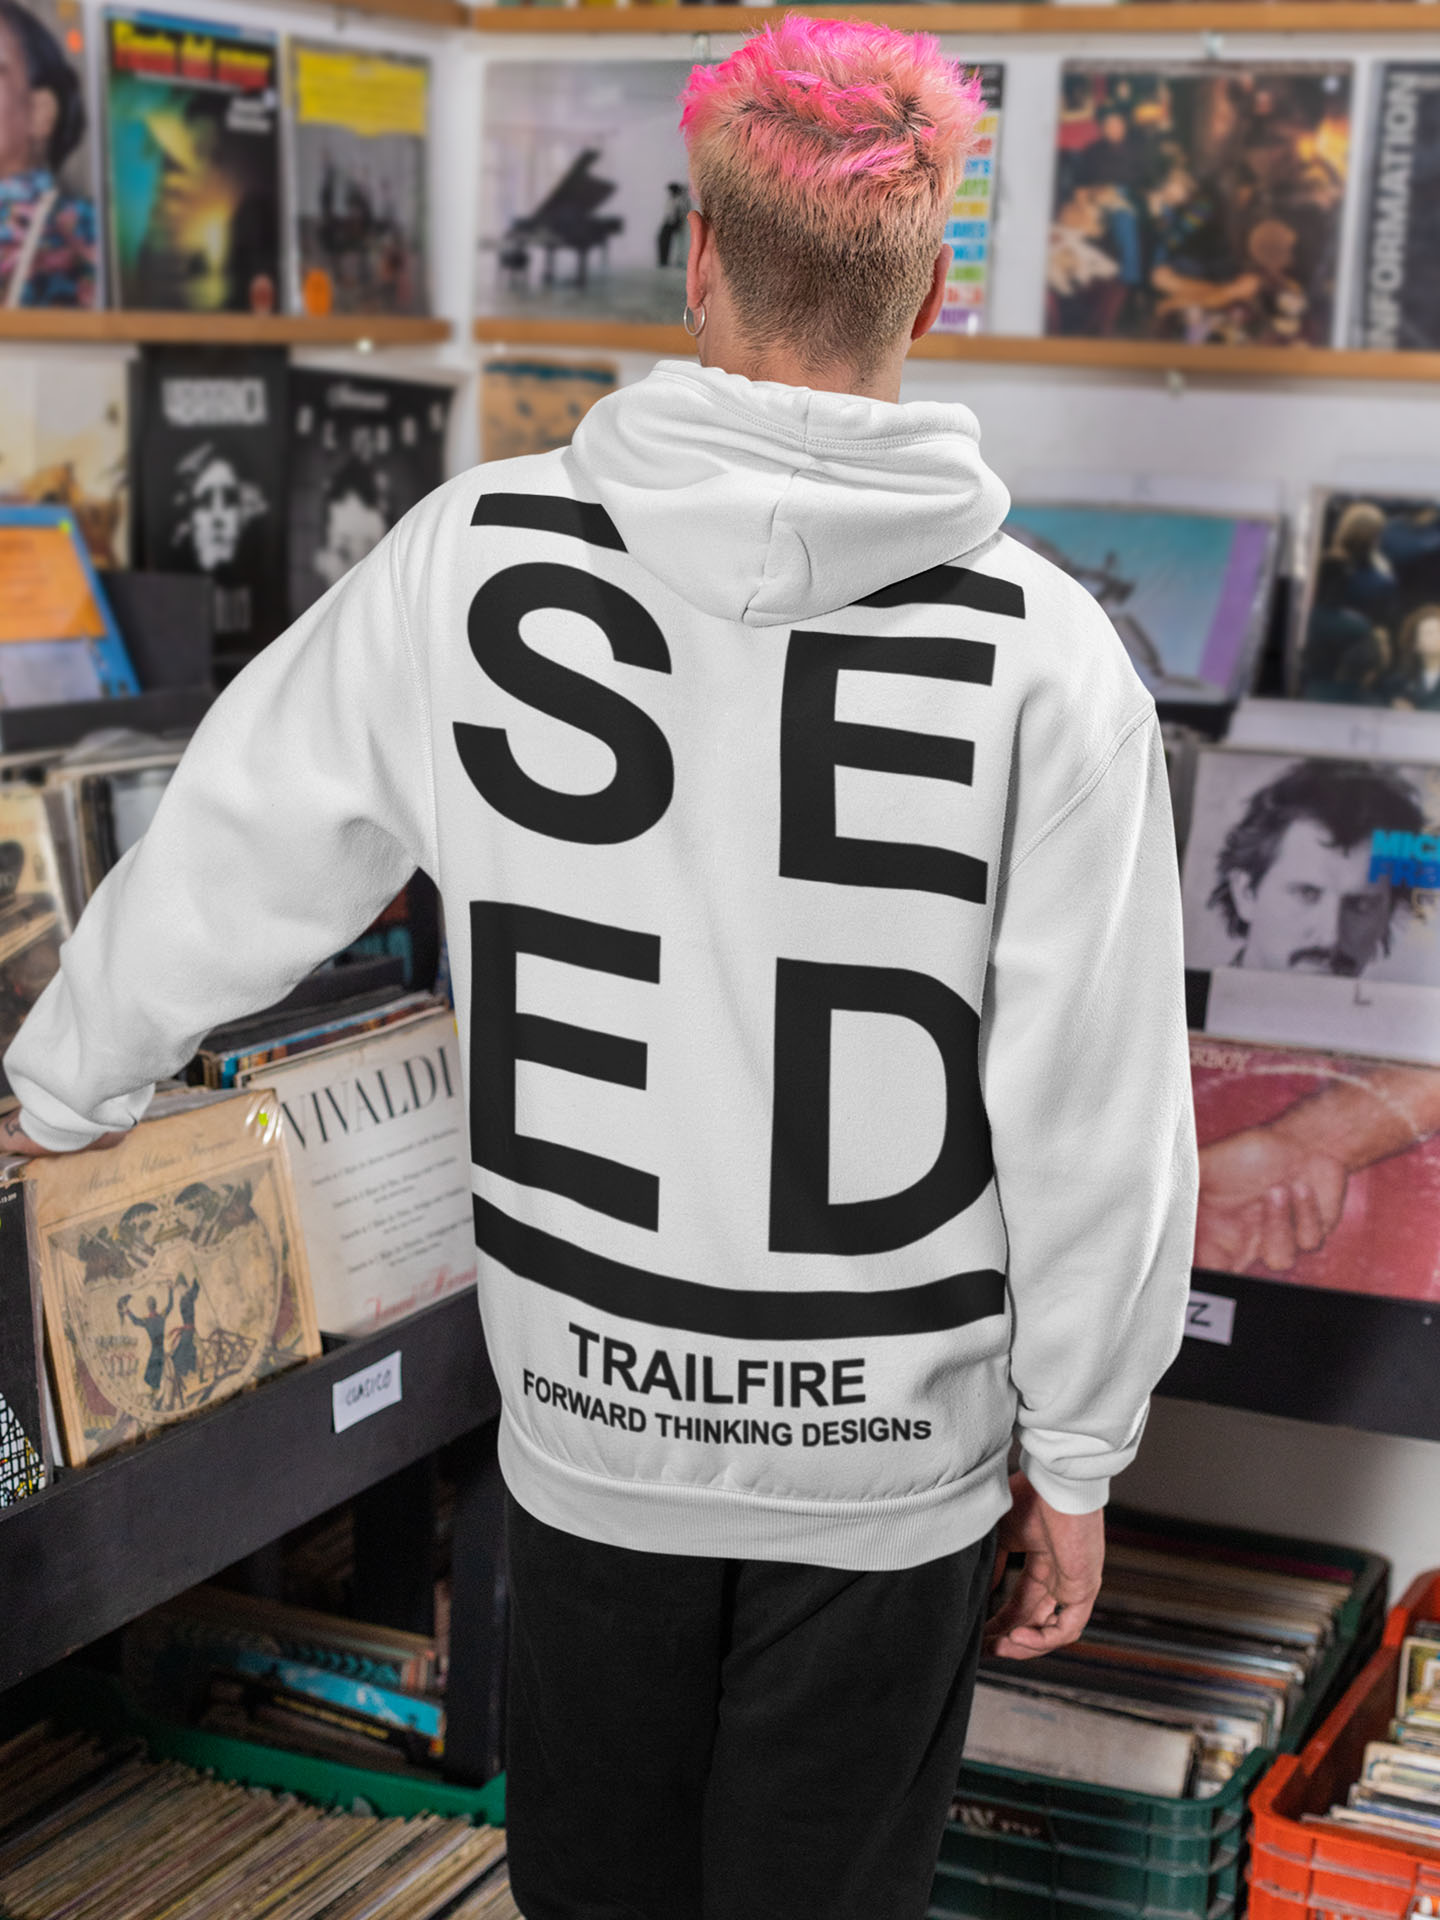 Spredshirt-Prints-Trailfire_0044_back-view-mockup-of-a-man-with-a-hoodie-looking-at-some-vinyl-records-33319